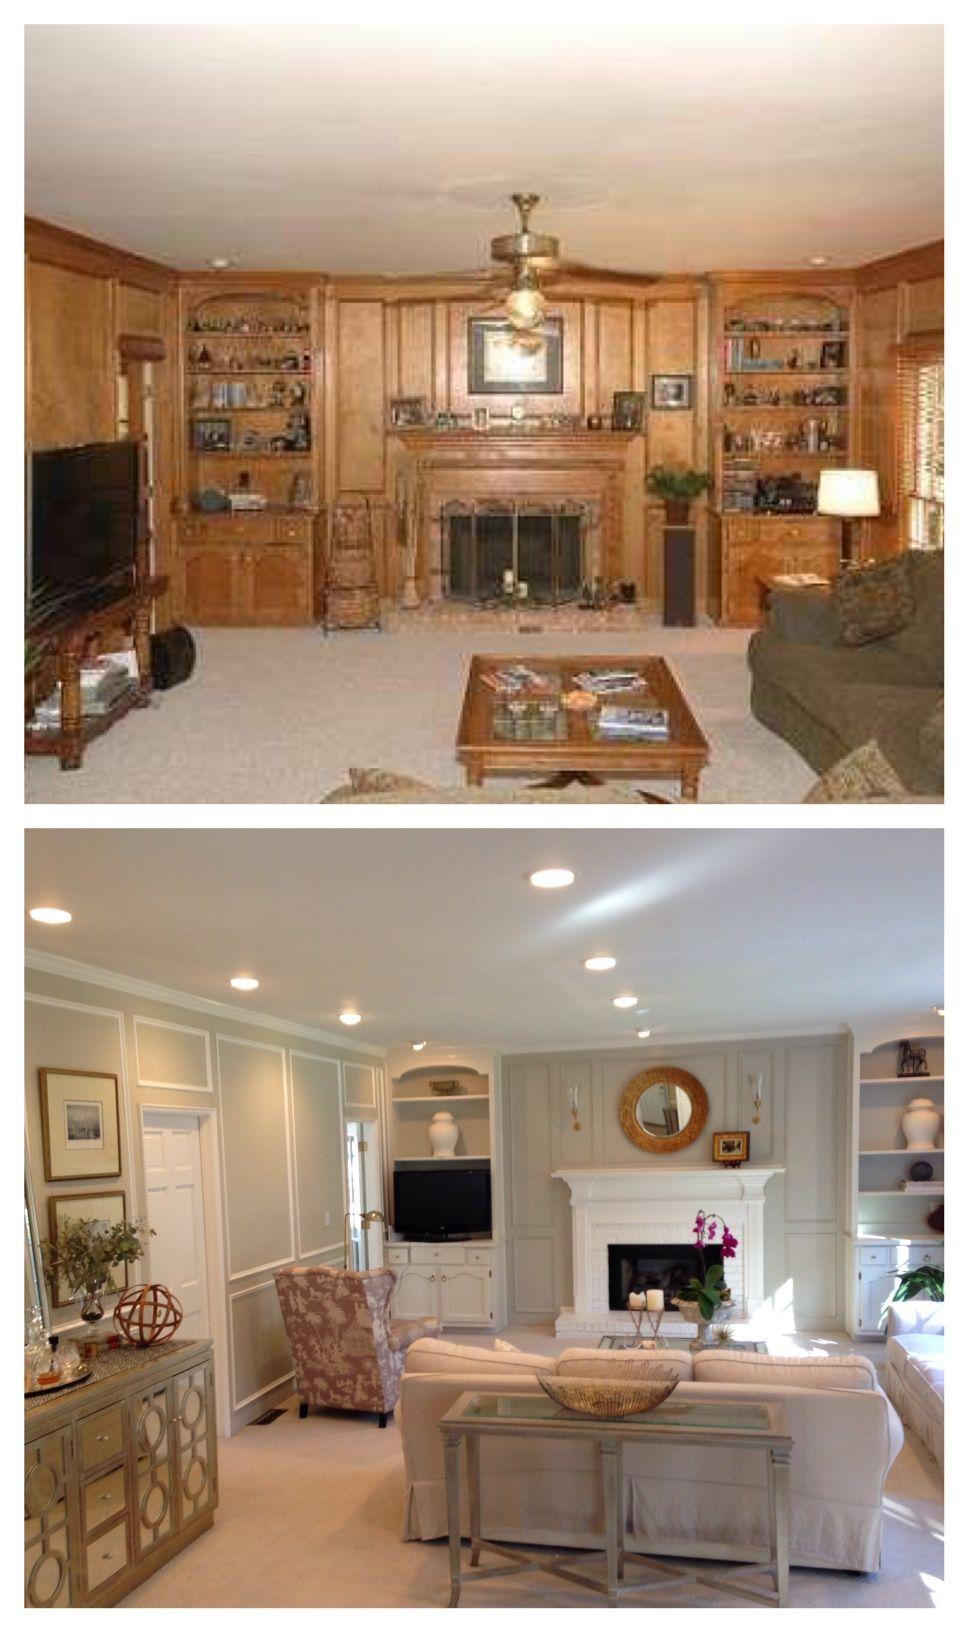 living room before and after paneling painted updated decorating pinterest avant apr s. Black Bedroom Furniture Sets. Home Design Ideas